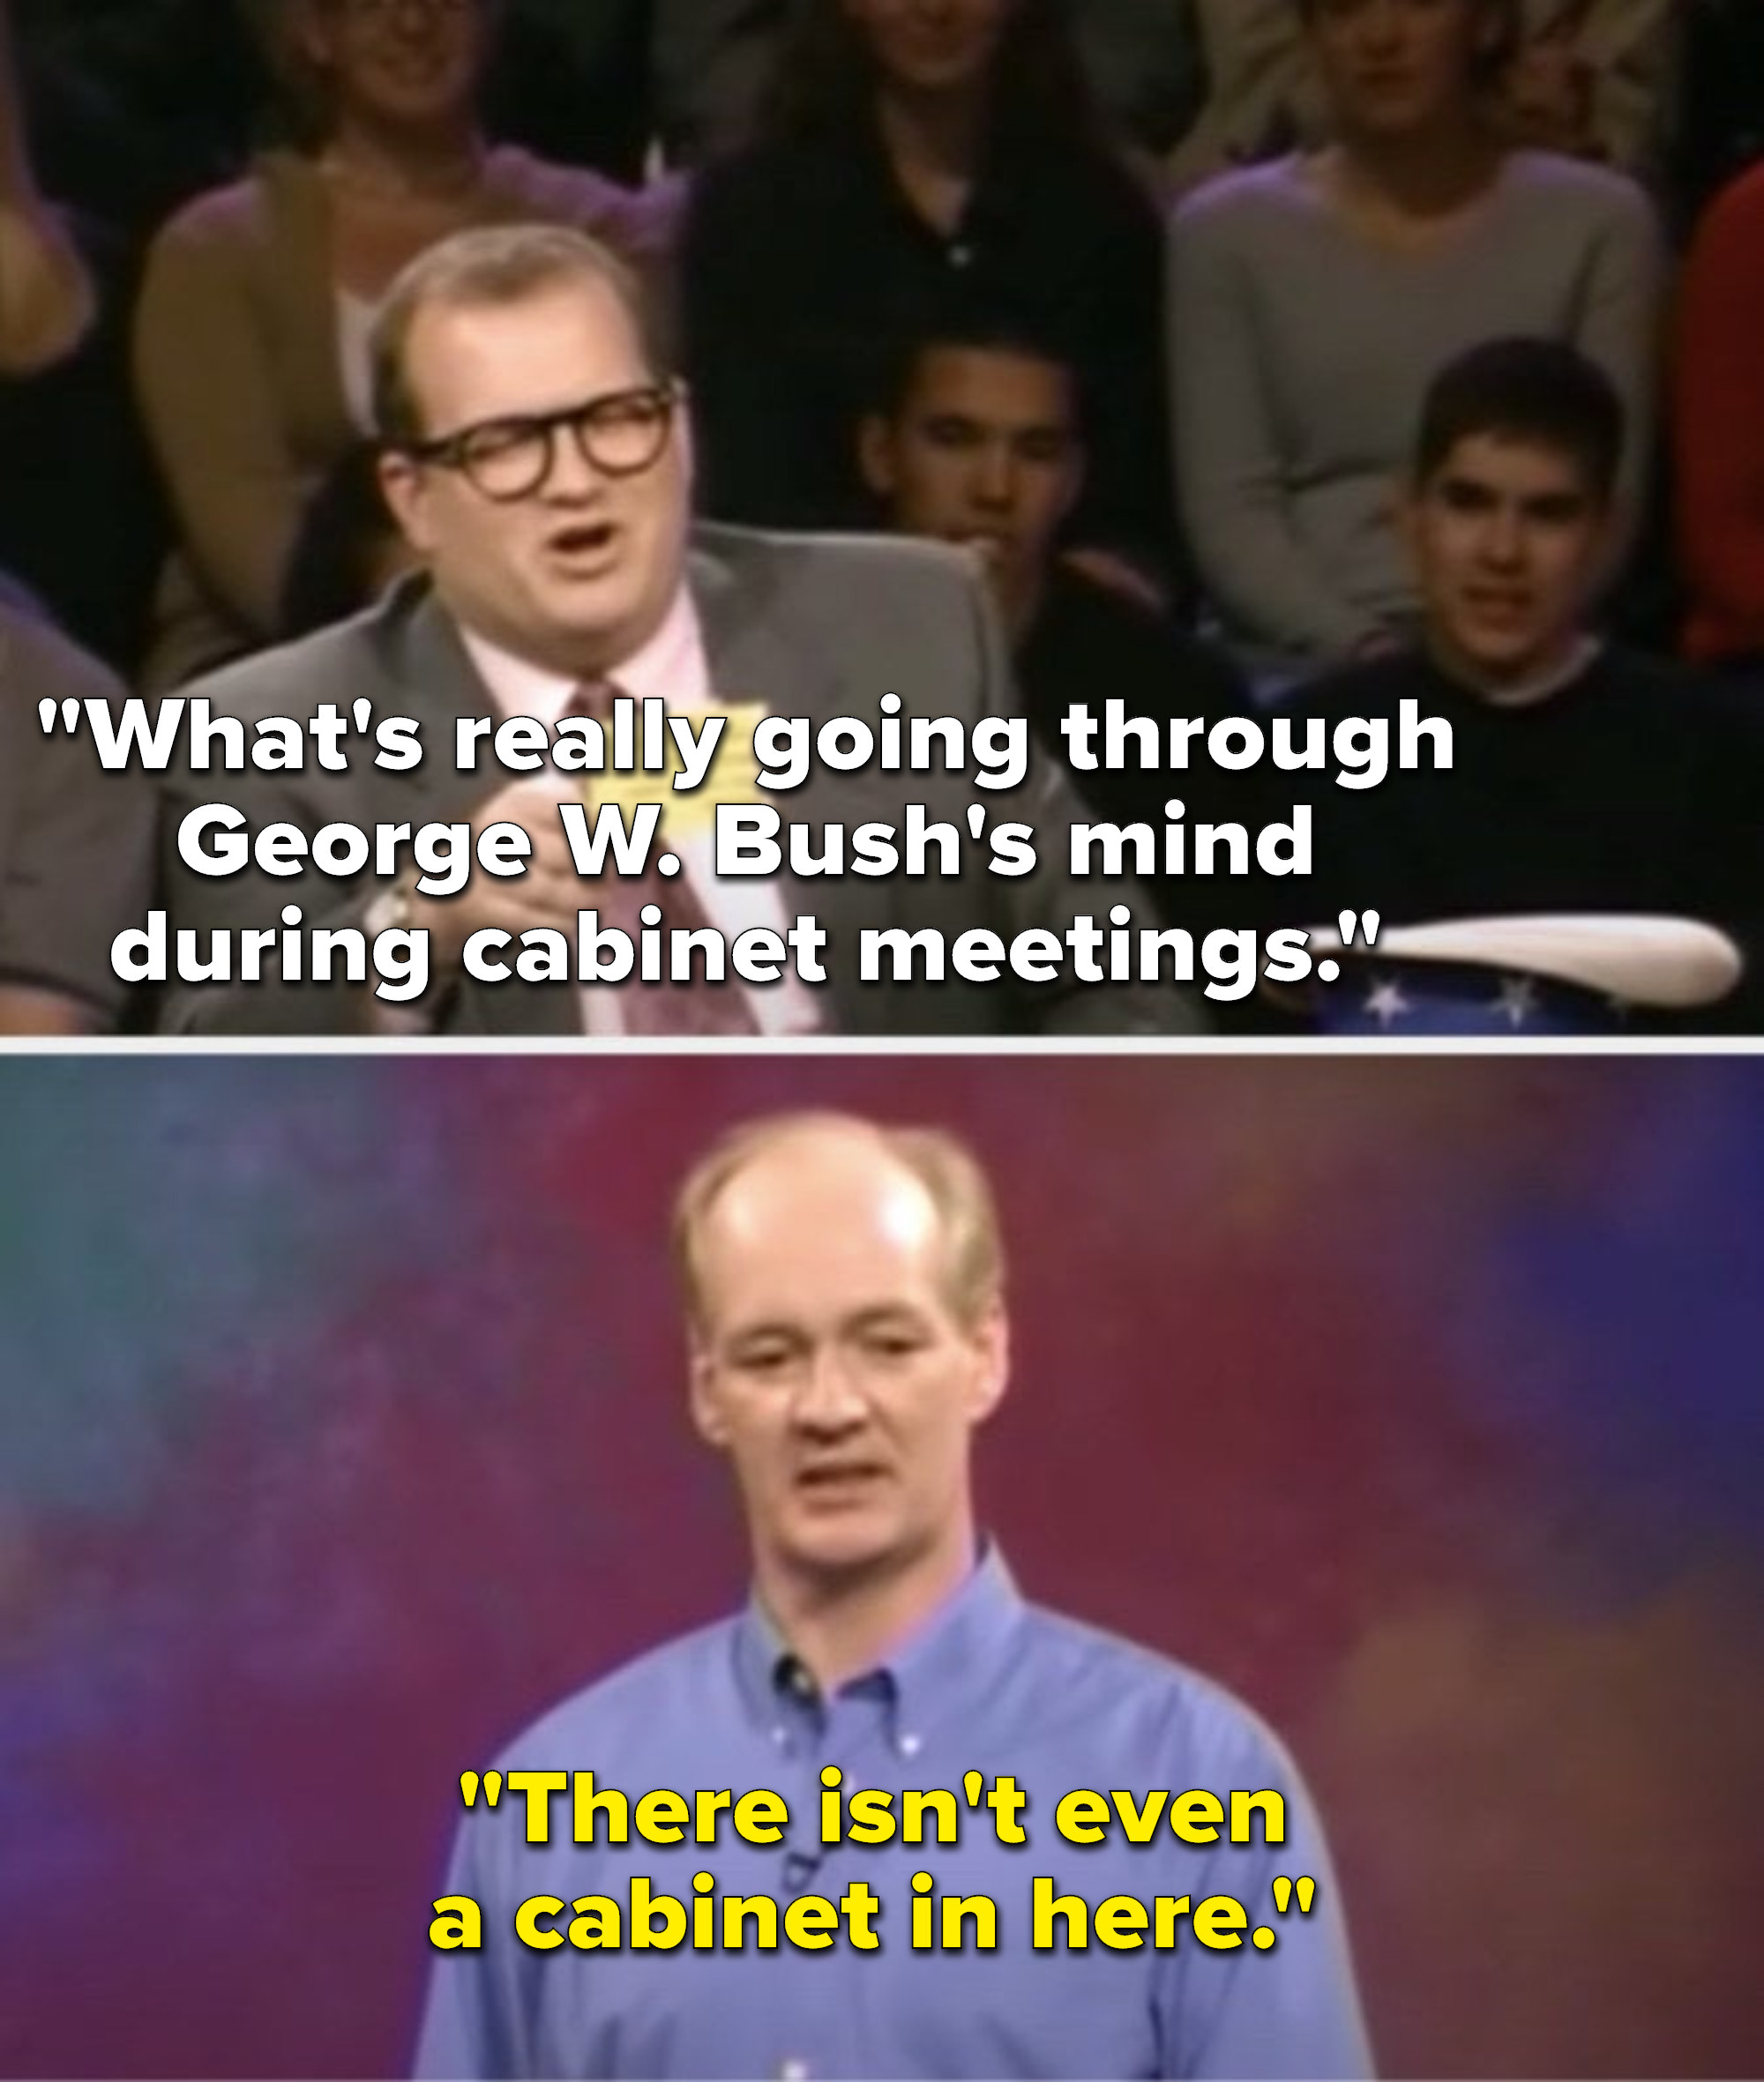 """Carey says, """"What's really going through George W. Bush's mind during cabinet meetings,"""" and Mochrie says, """"There isn't even a cabinet in here"""""""